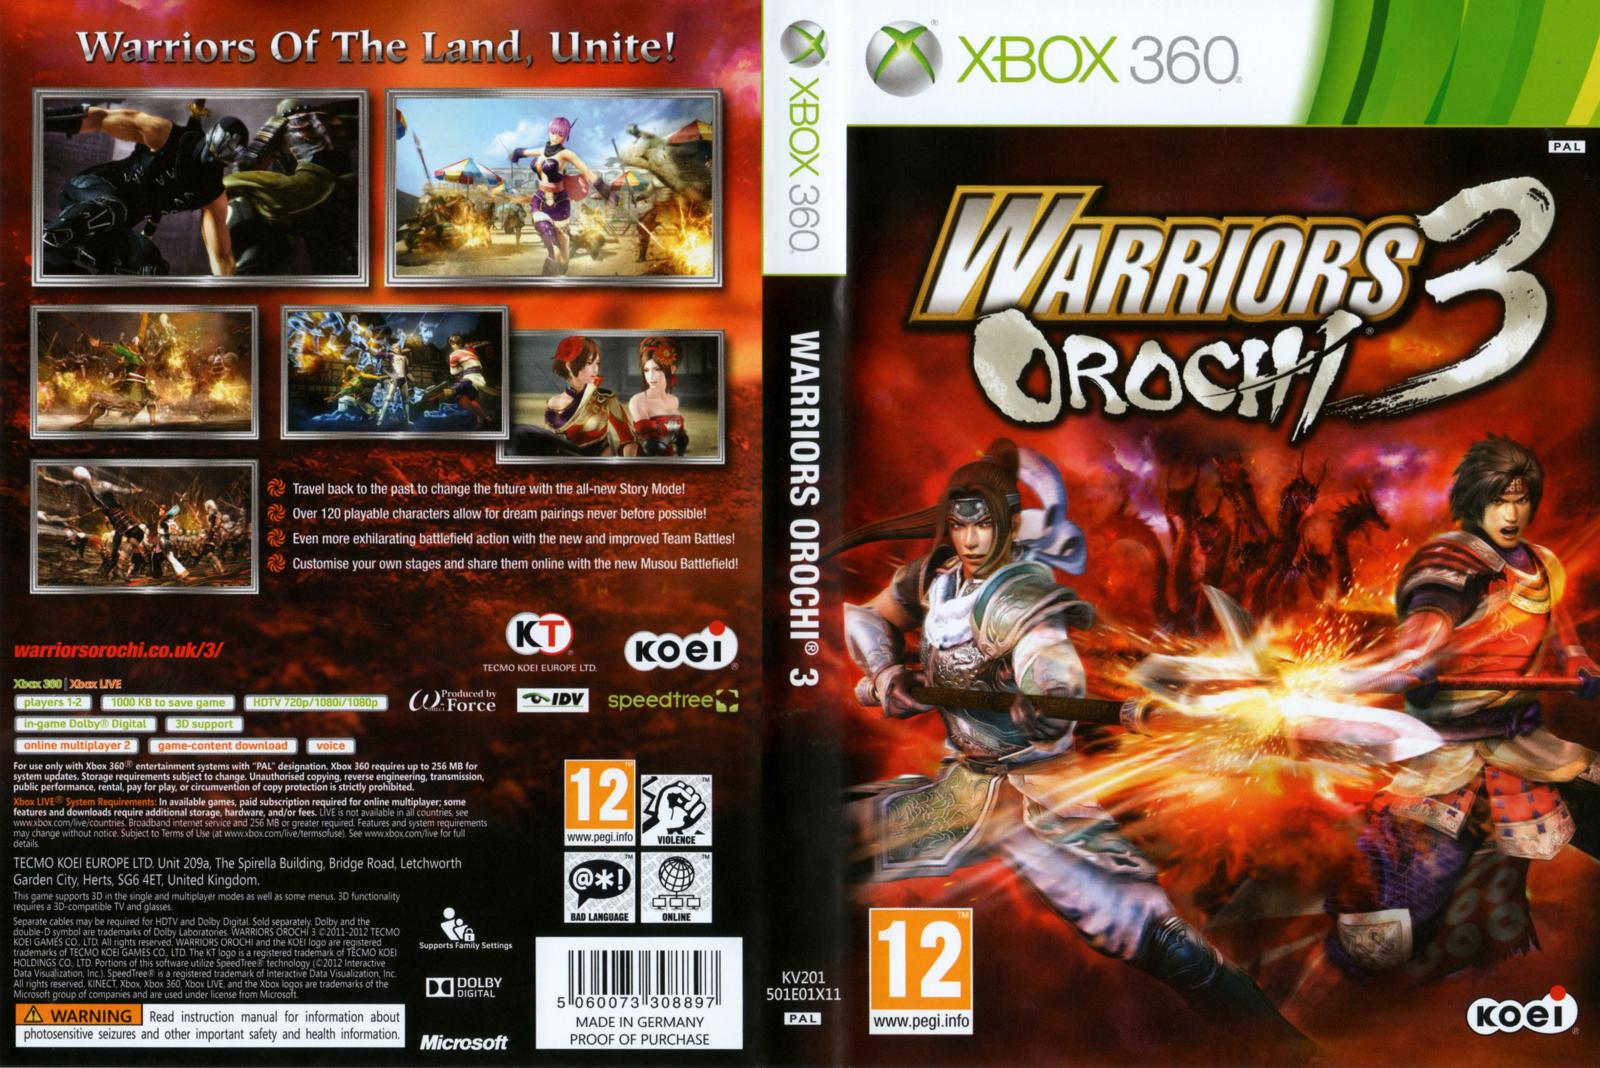 Mod nude warriors orochi 2 pc adult videos